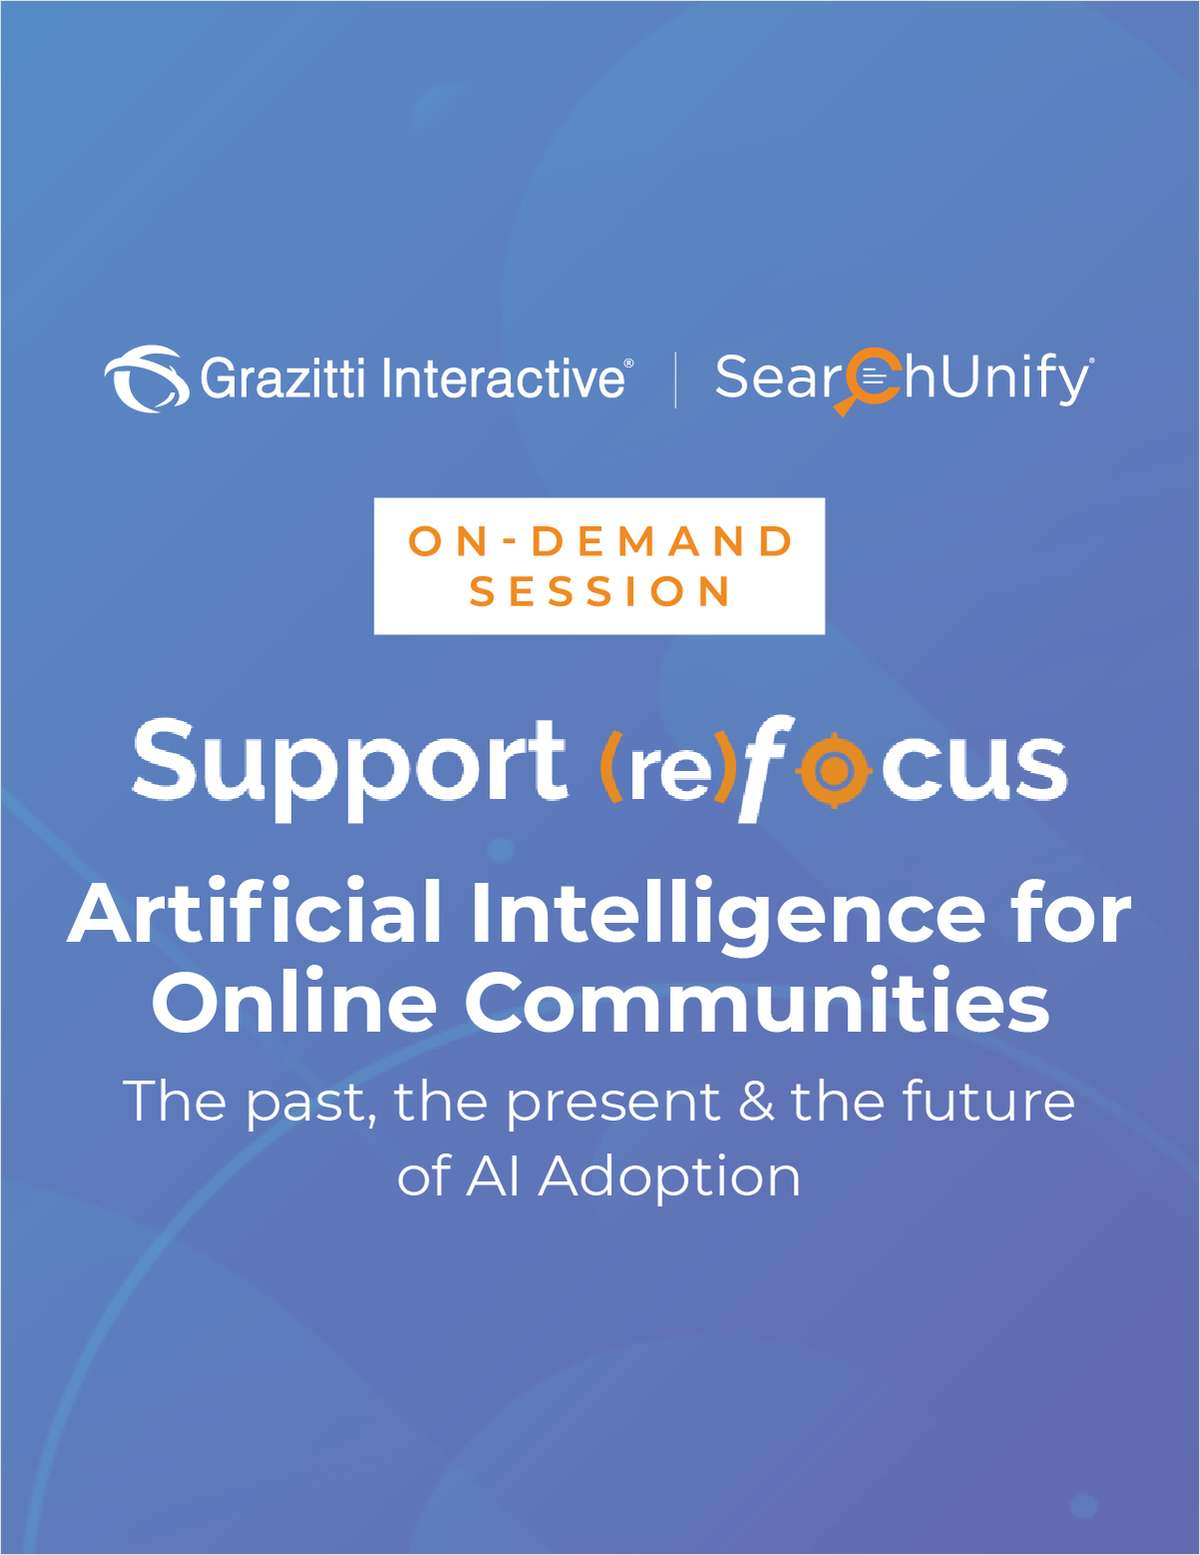 Artificial Intelligence for Online Communities